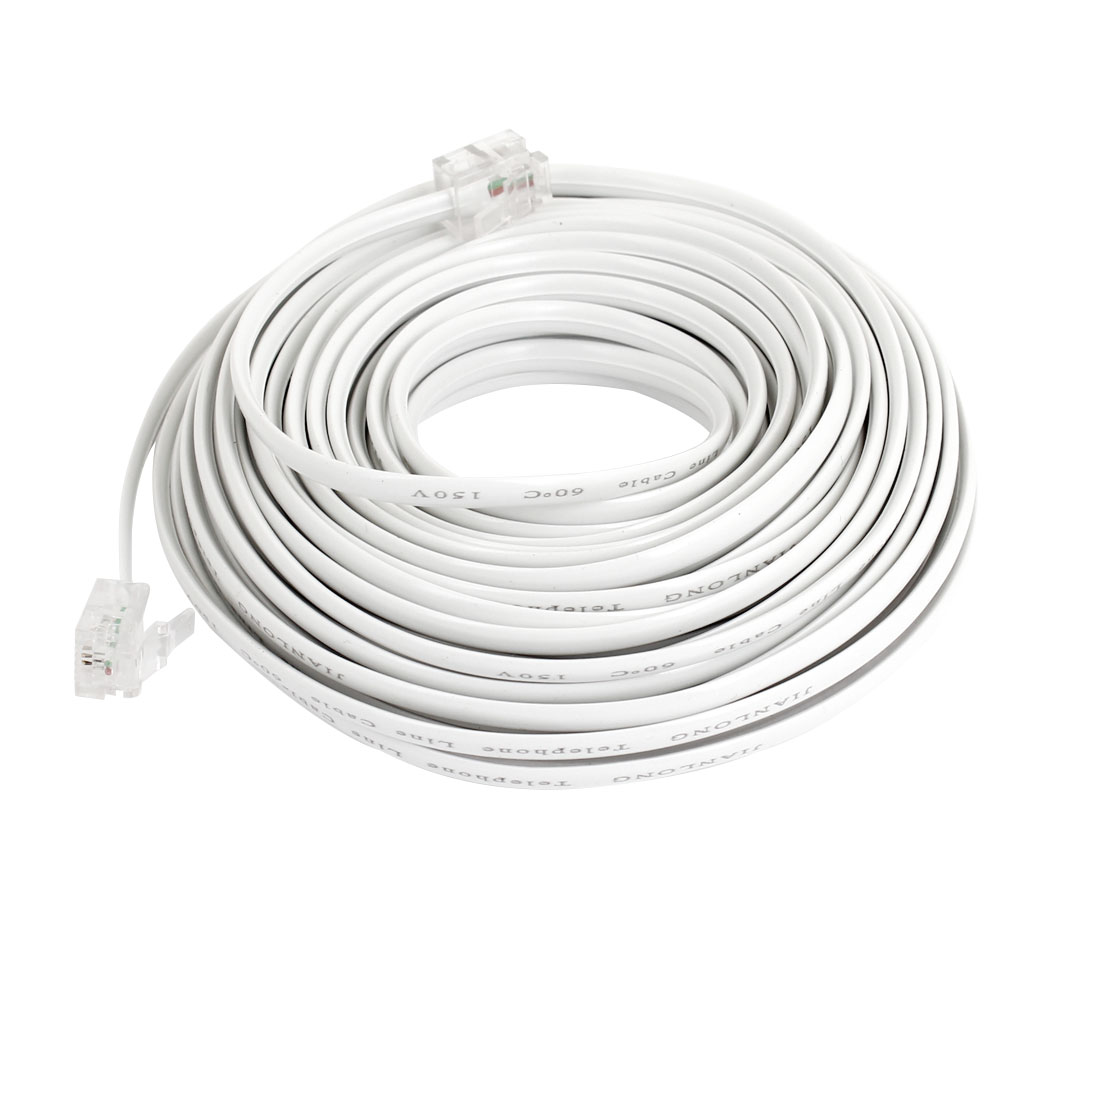 10M 32.8Ft RJ11 Telephone Extension Cable Connector White